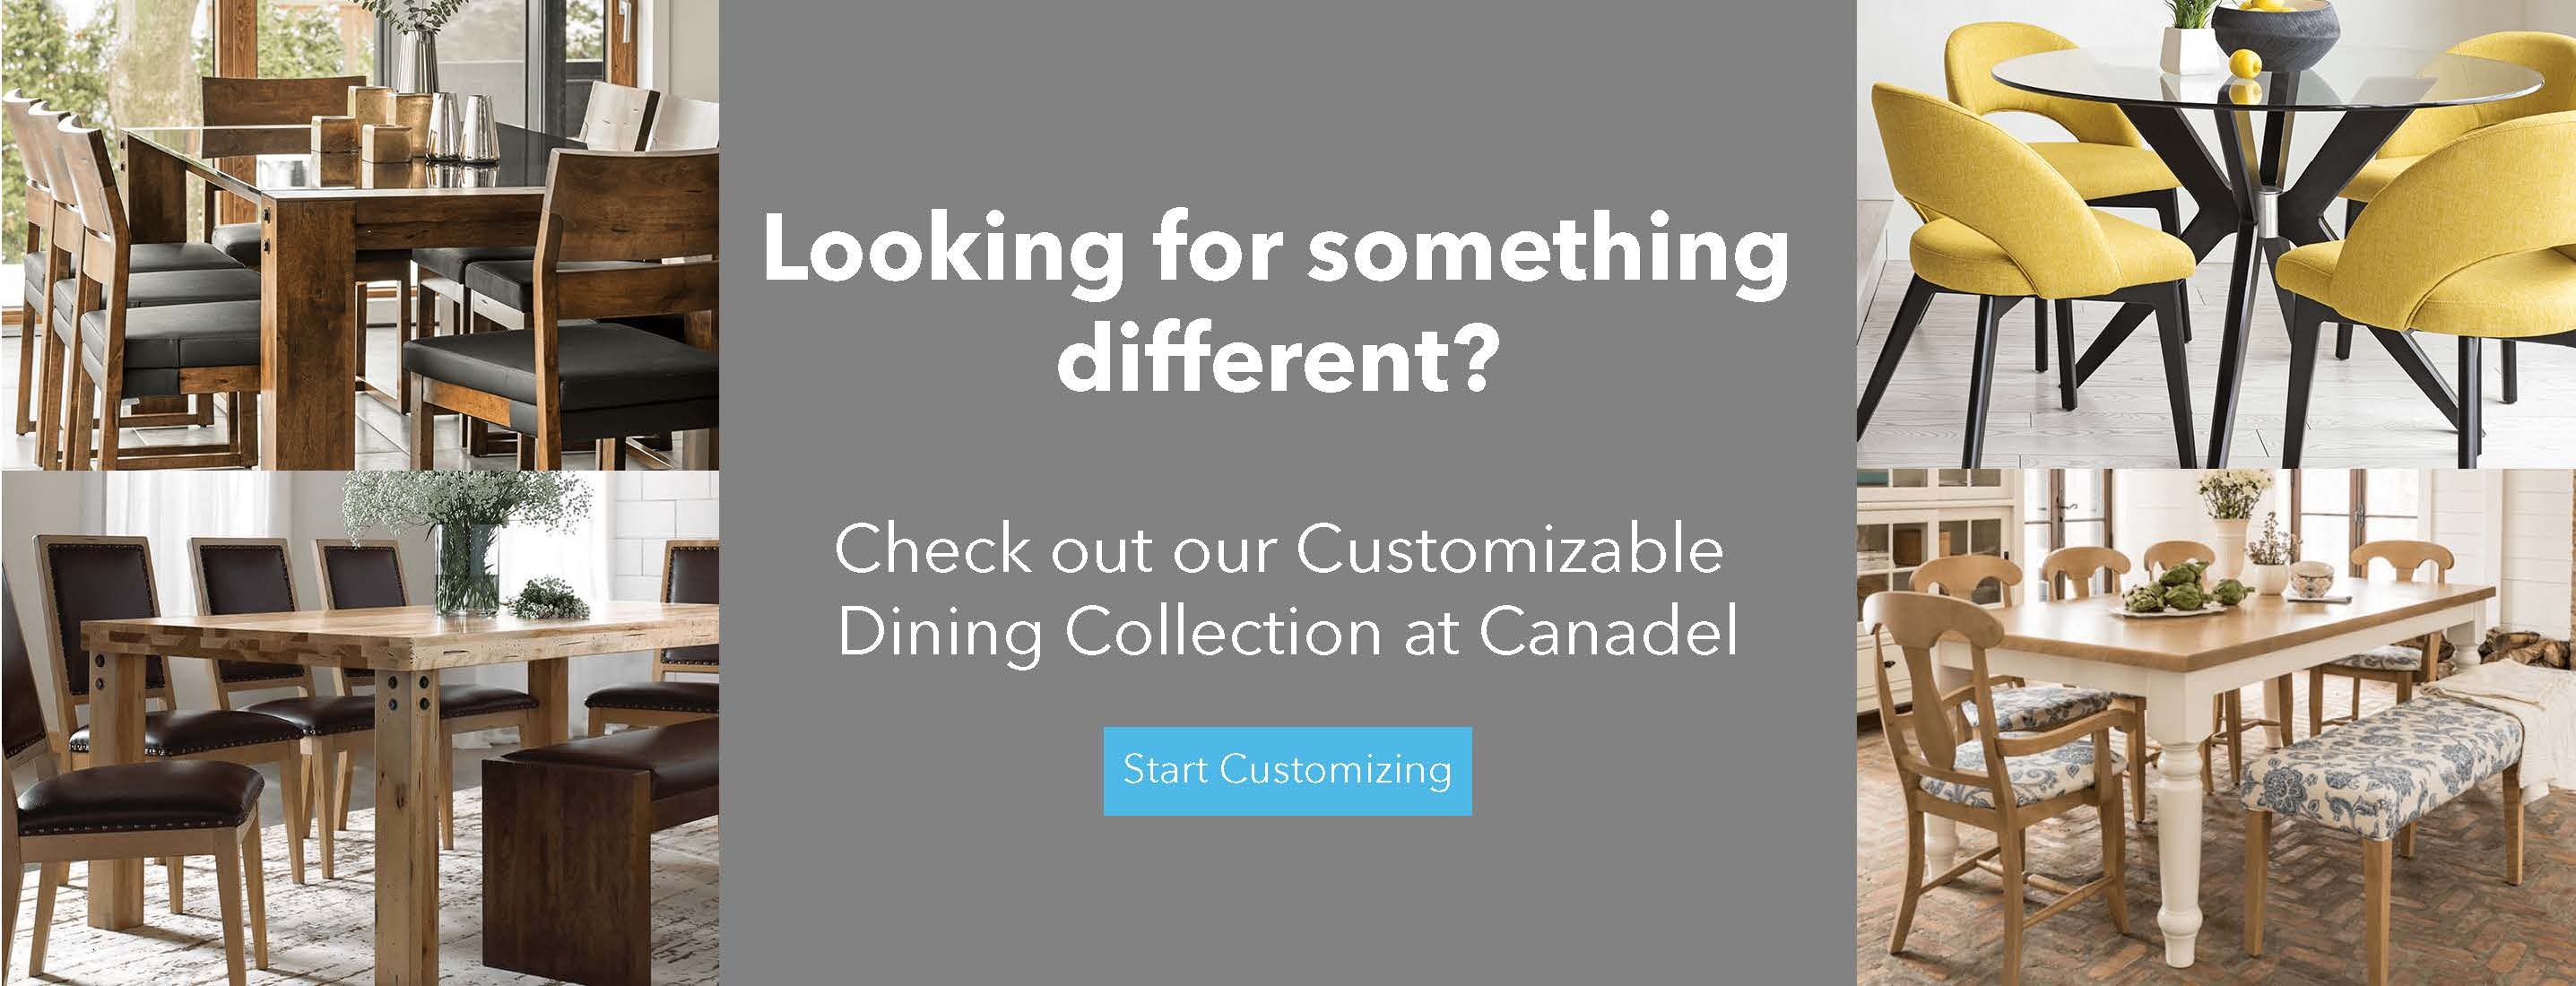 Customize able Dining